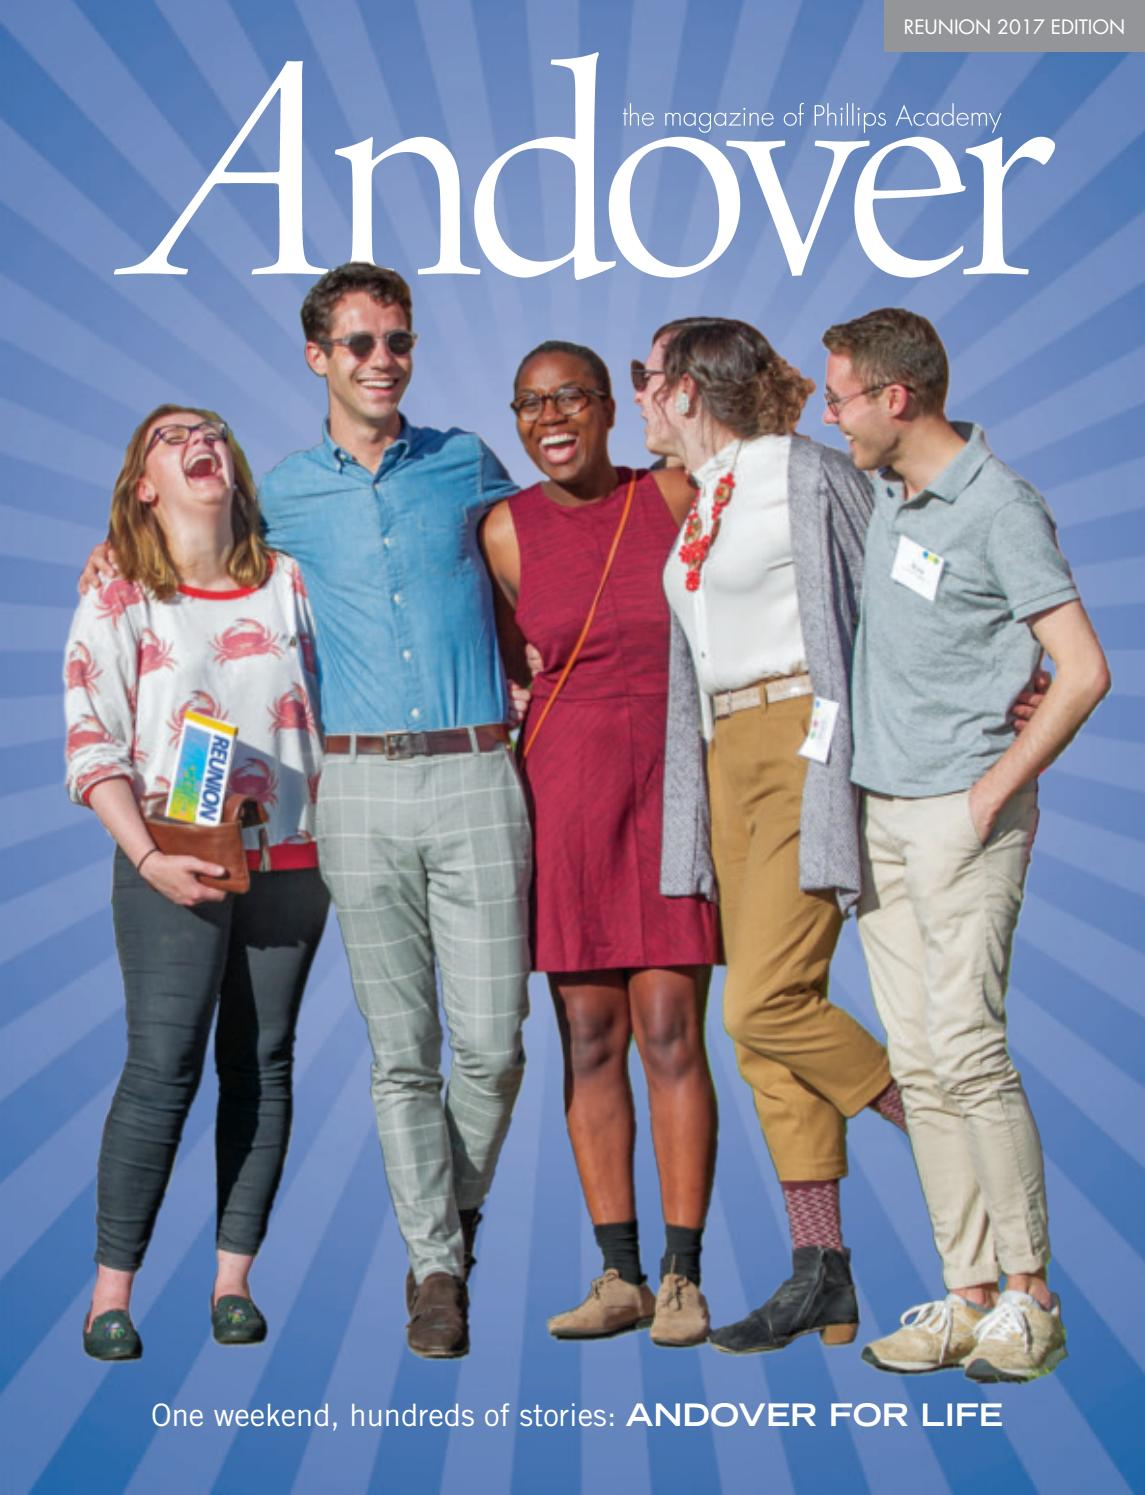 0d4242ebd Andover magazine Reunion 2017 by Phillips Academy - issuu